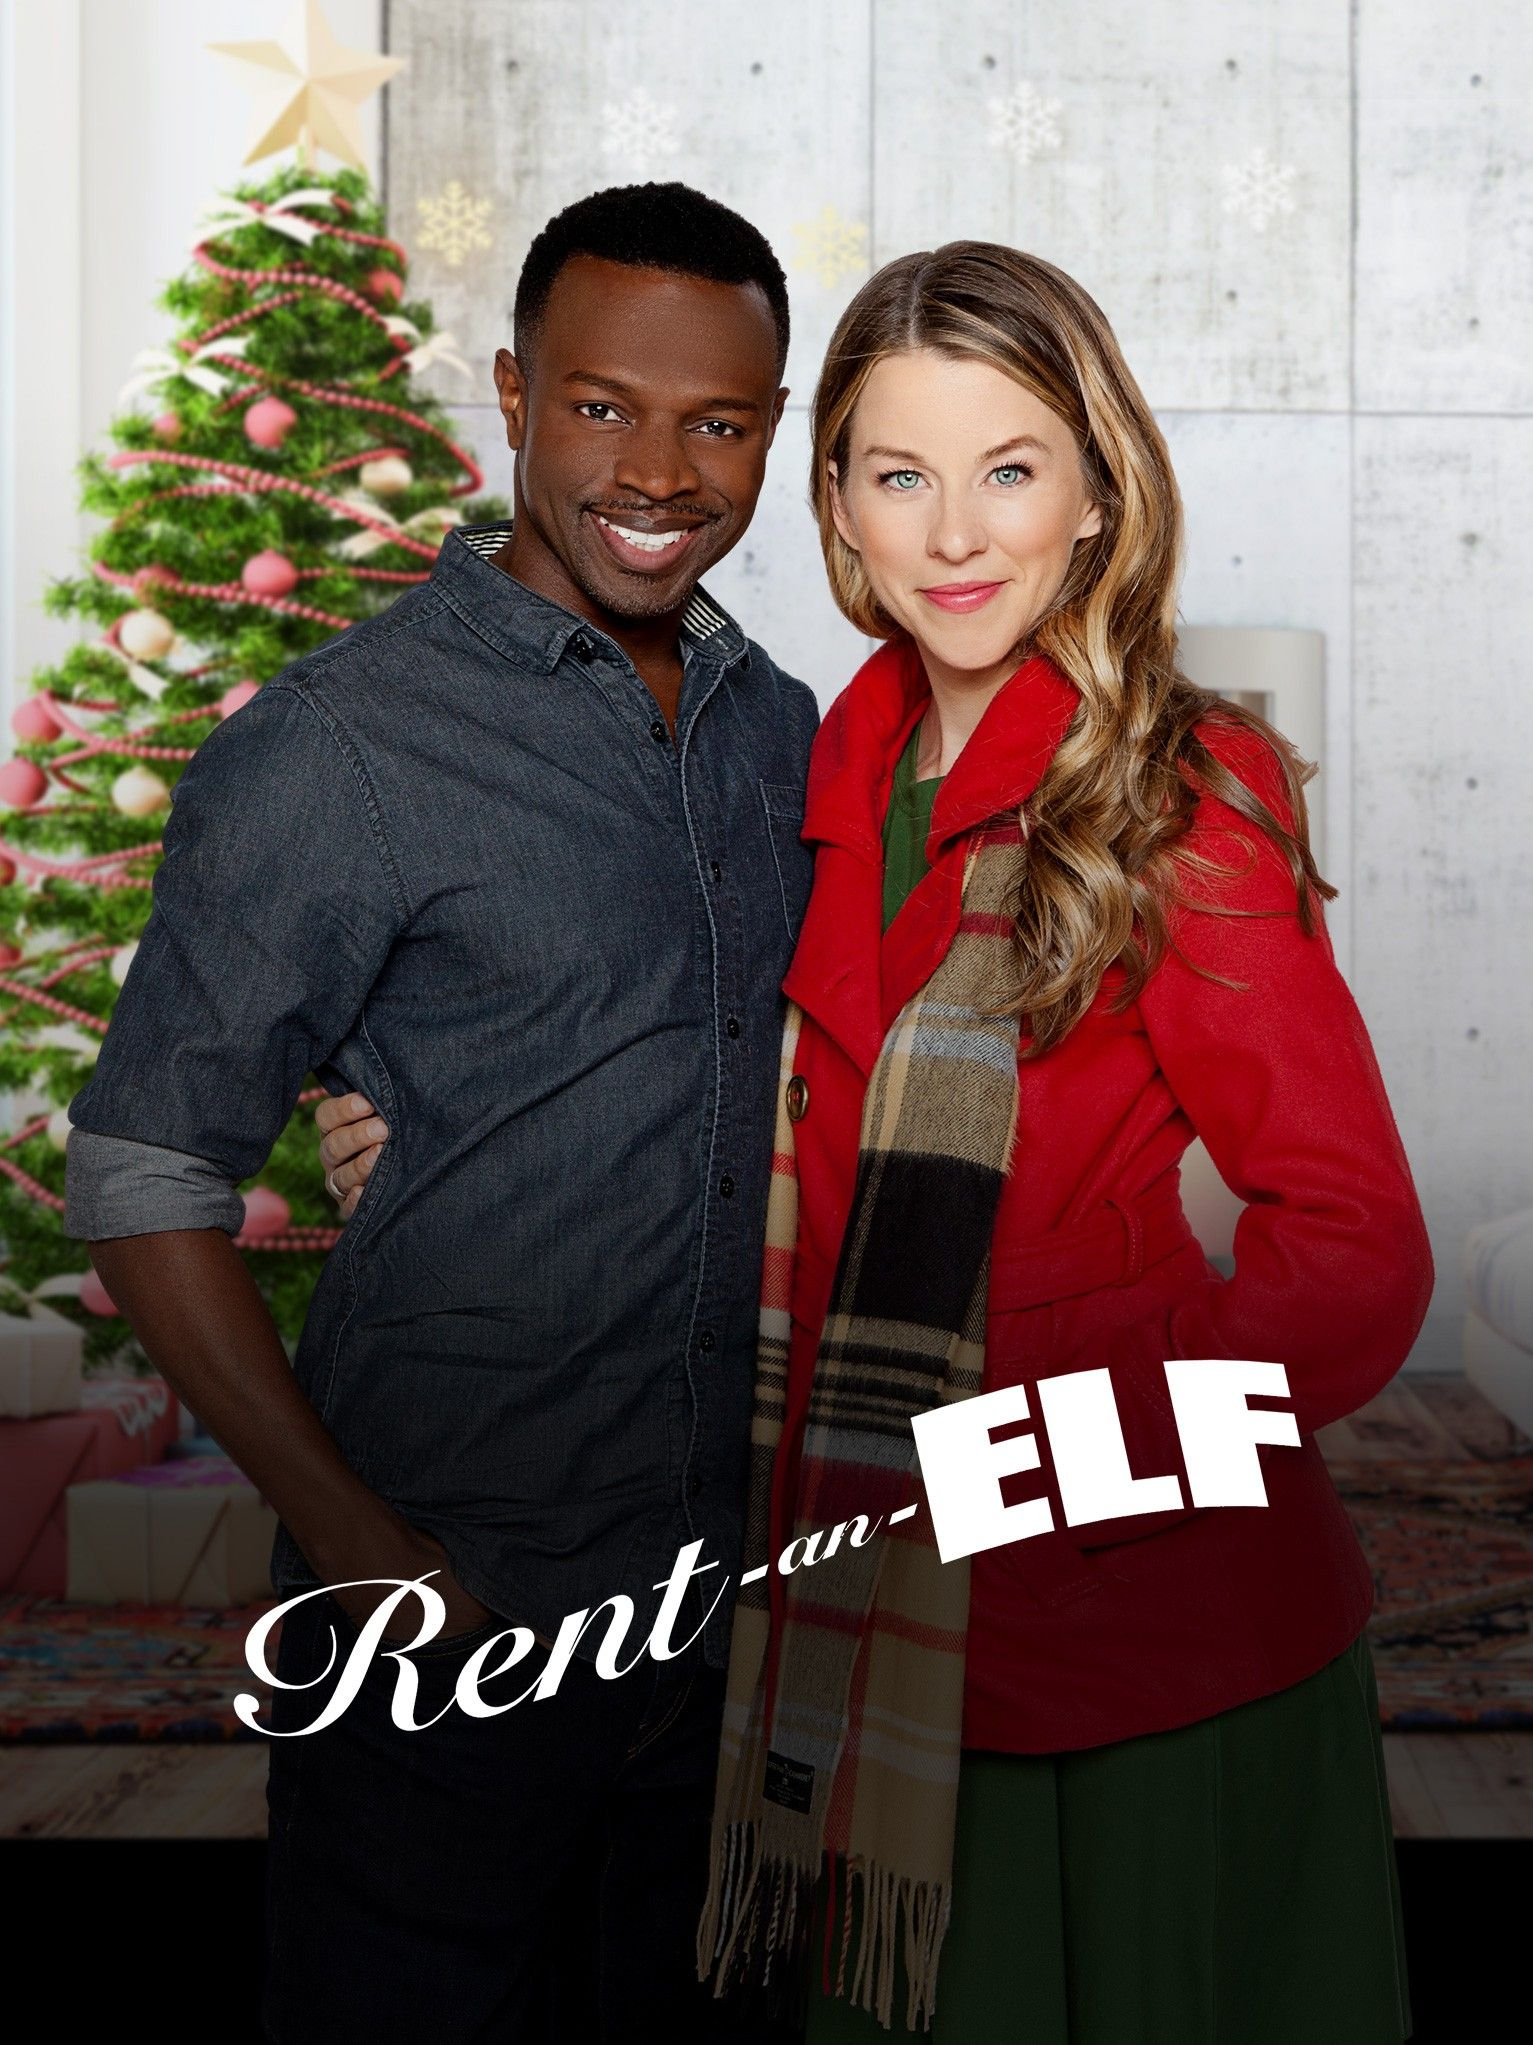 """RentanElf"" (2018) Elf movie, Christmas movies on tv"